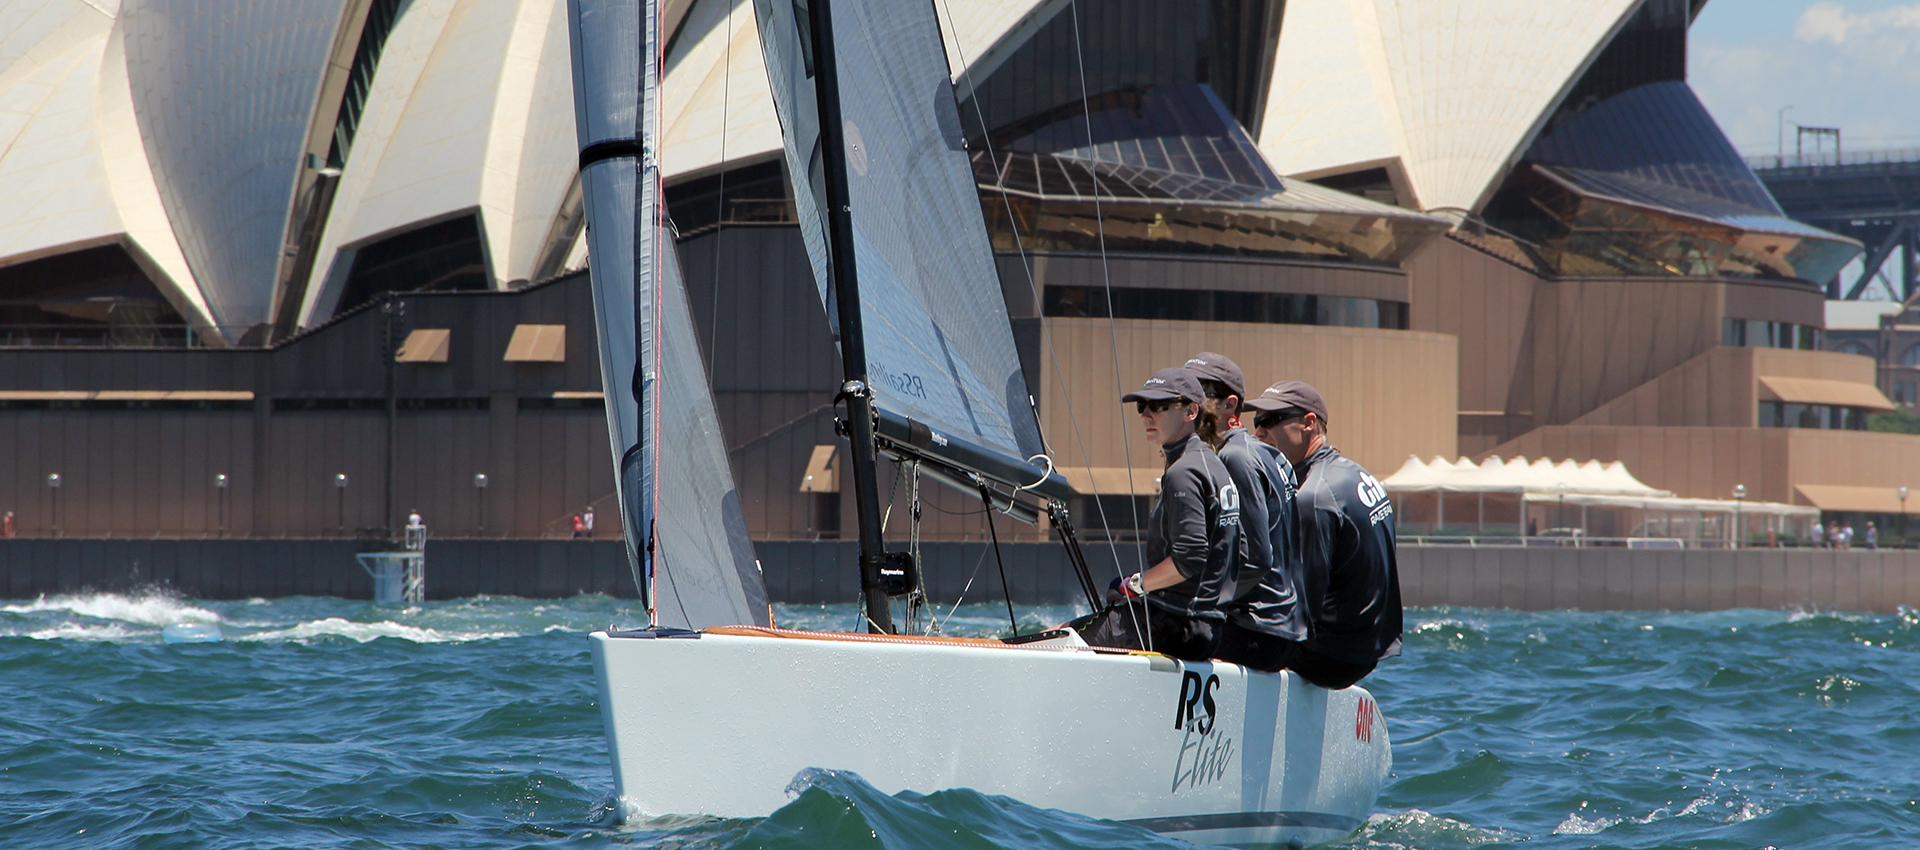 RS Elite – beautiful and refined racing keelboat across the age range